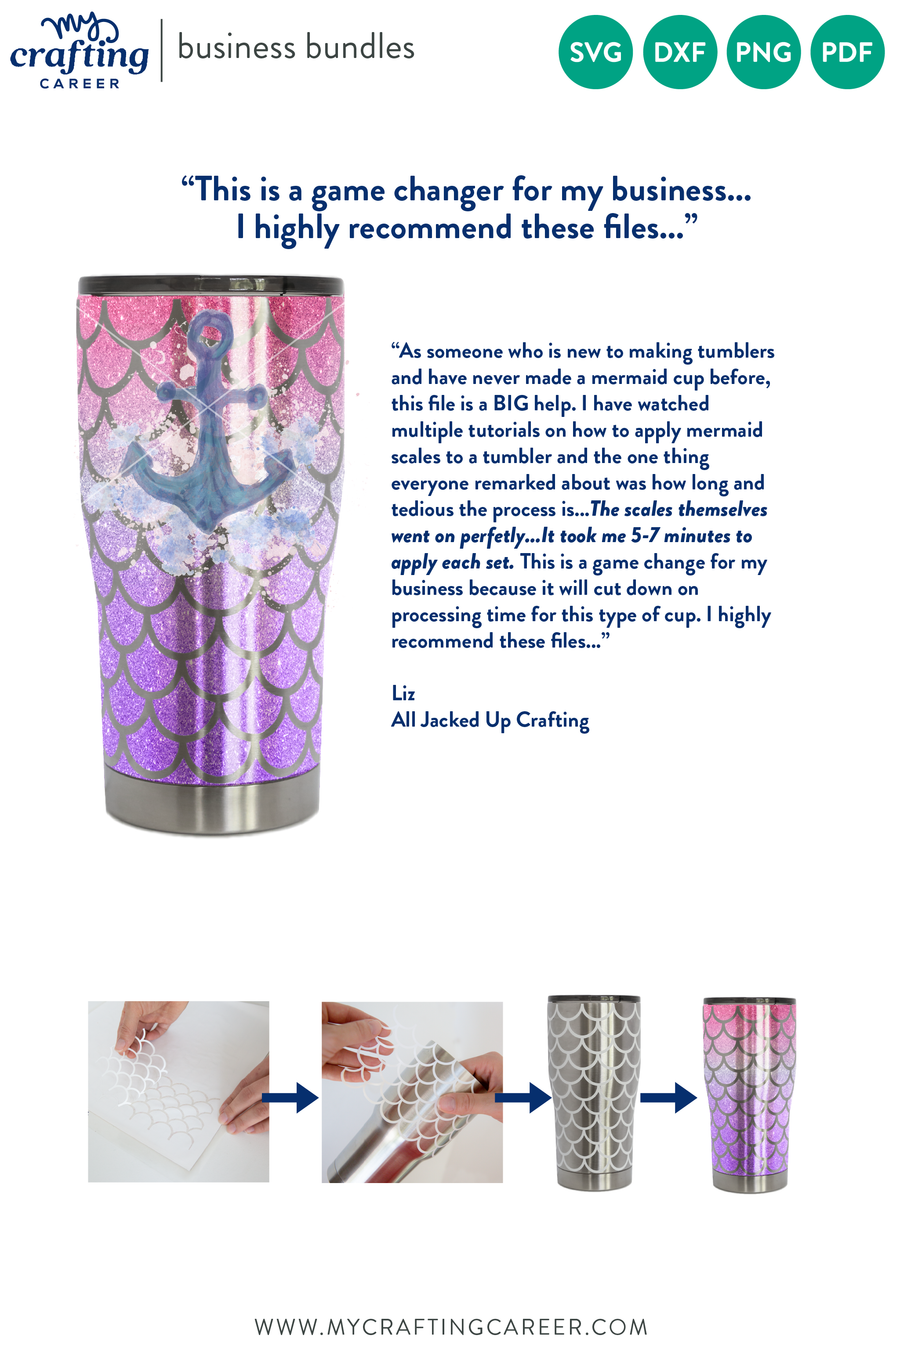 Hogg 20 oz Modern Curve Tumbler Mermaid Scales Business Bundle